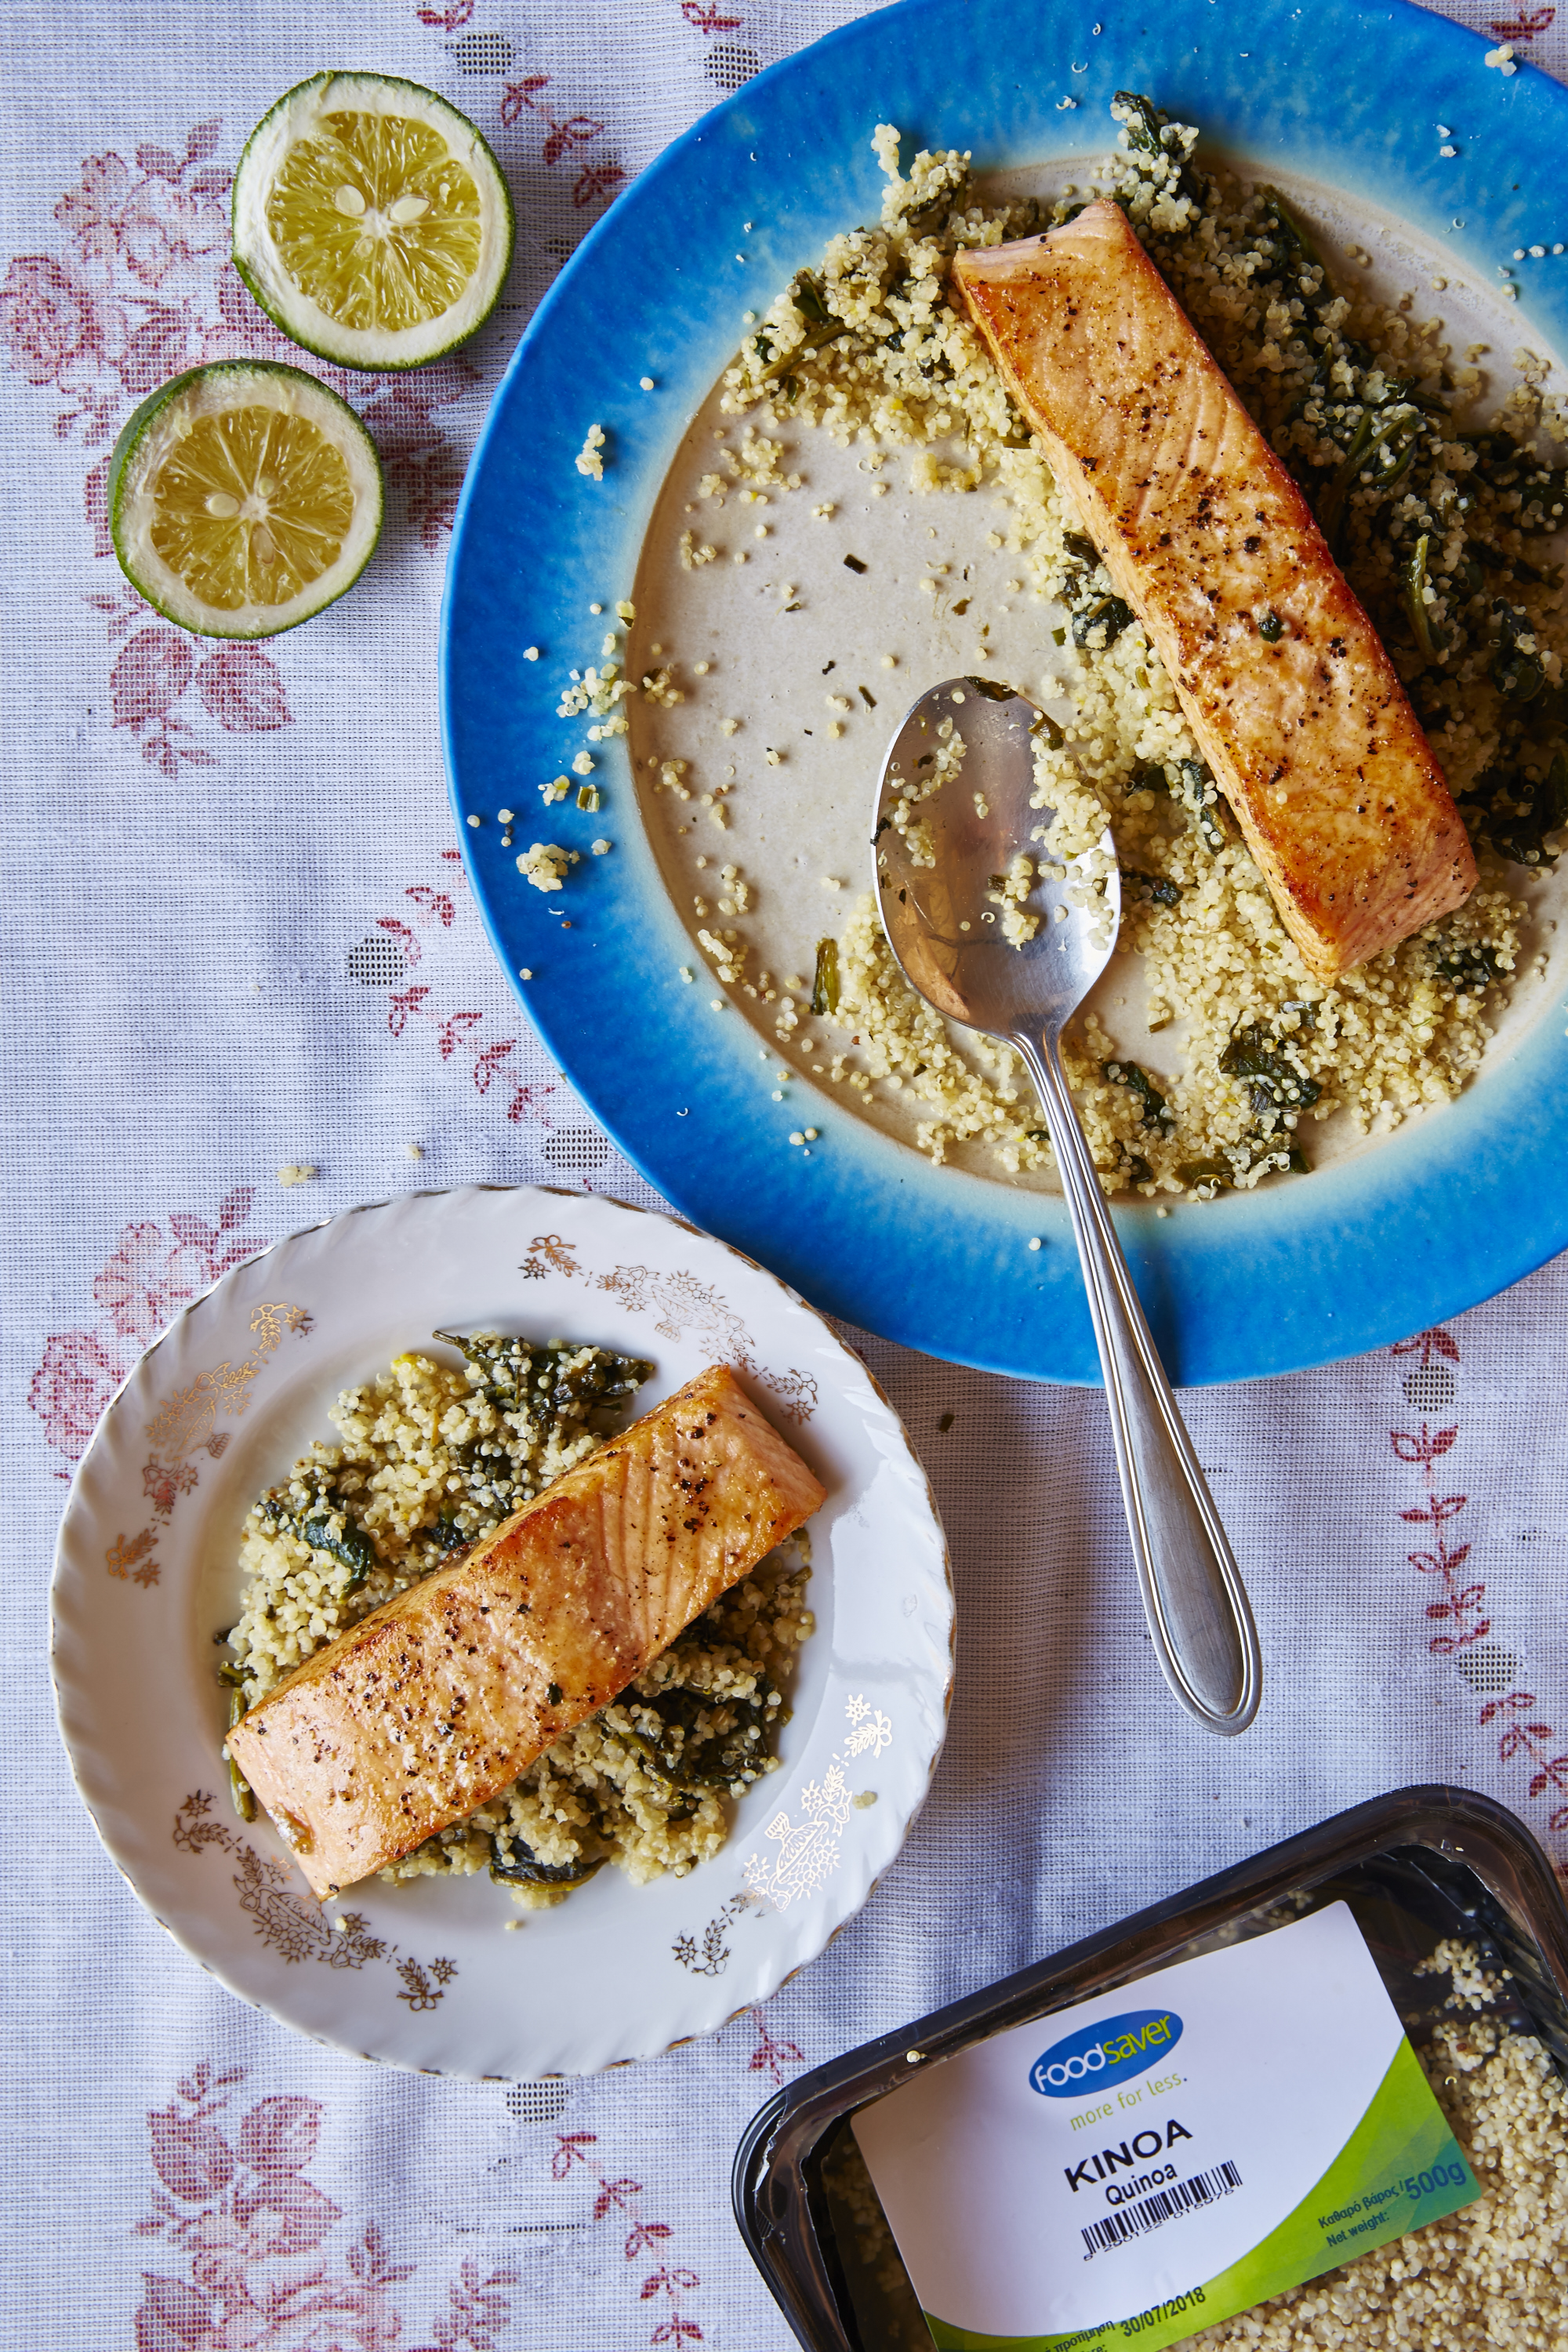 Foodsaver September Salmon Foodsaver - September - Salmon1610